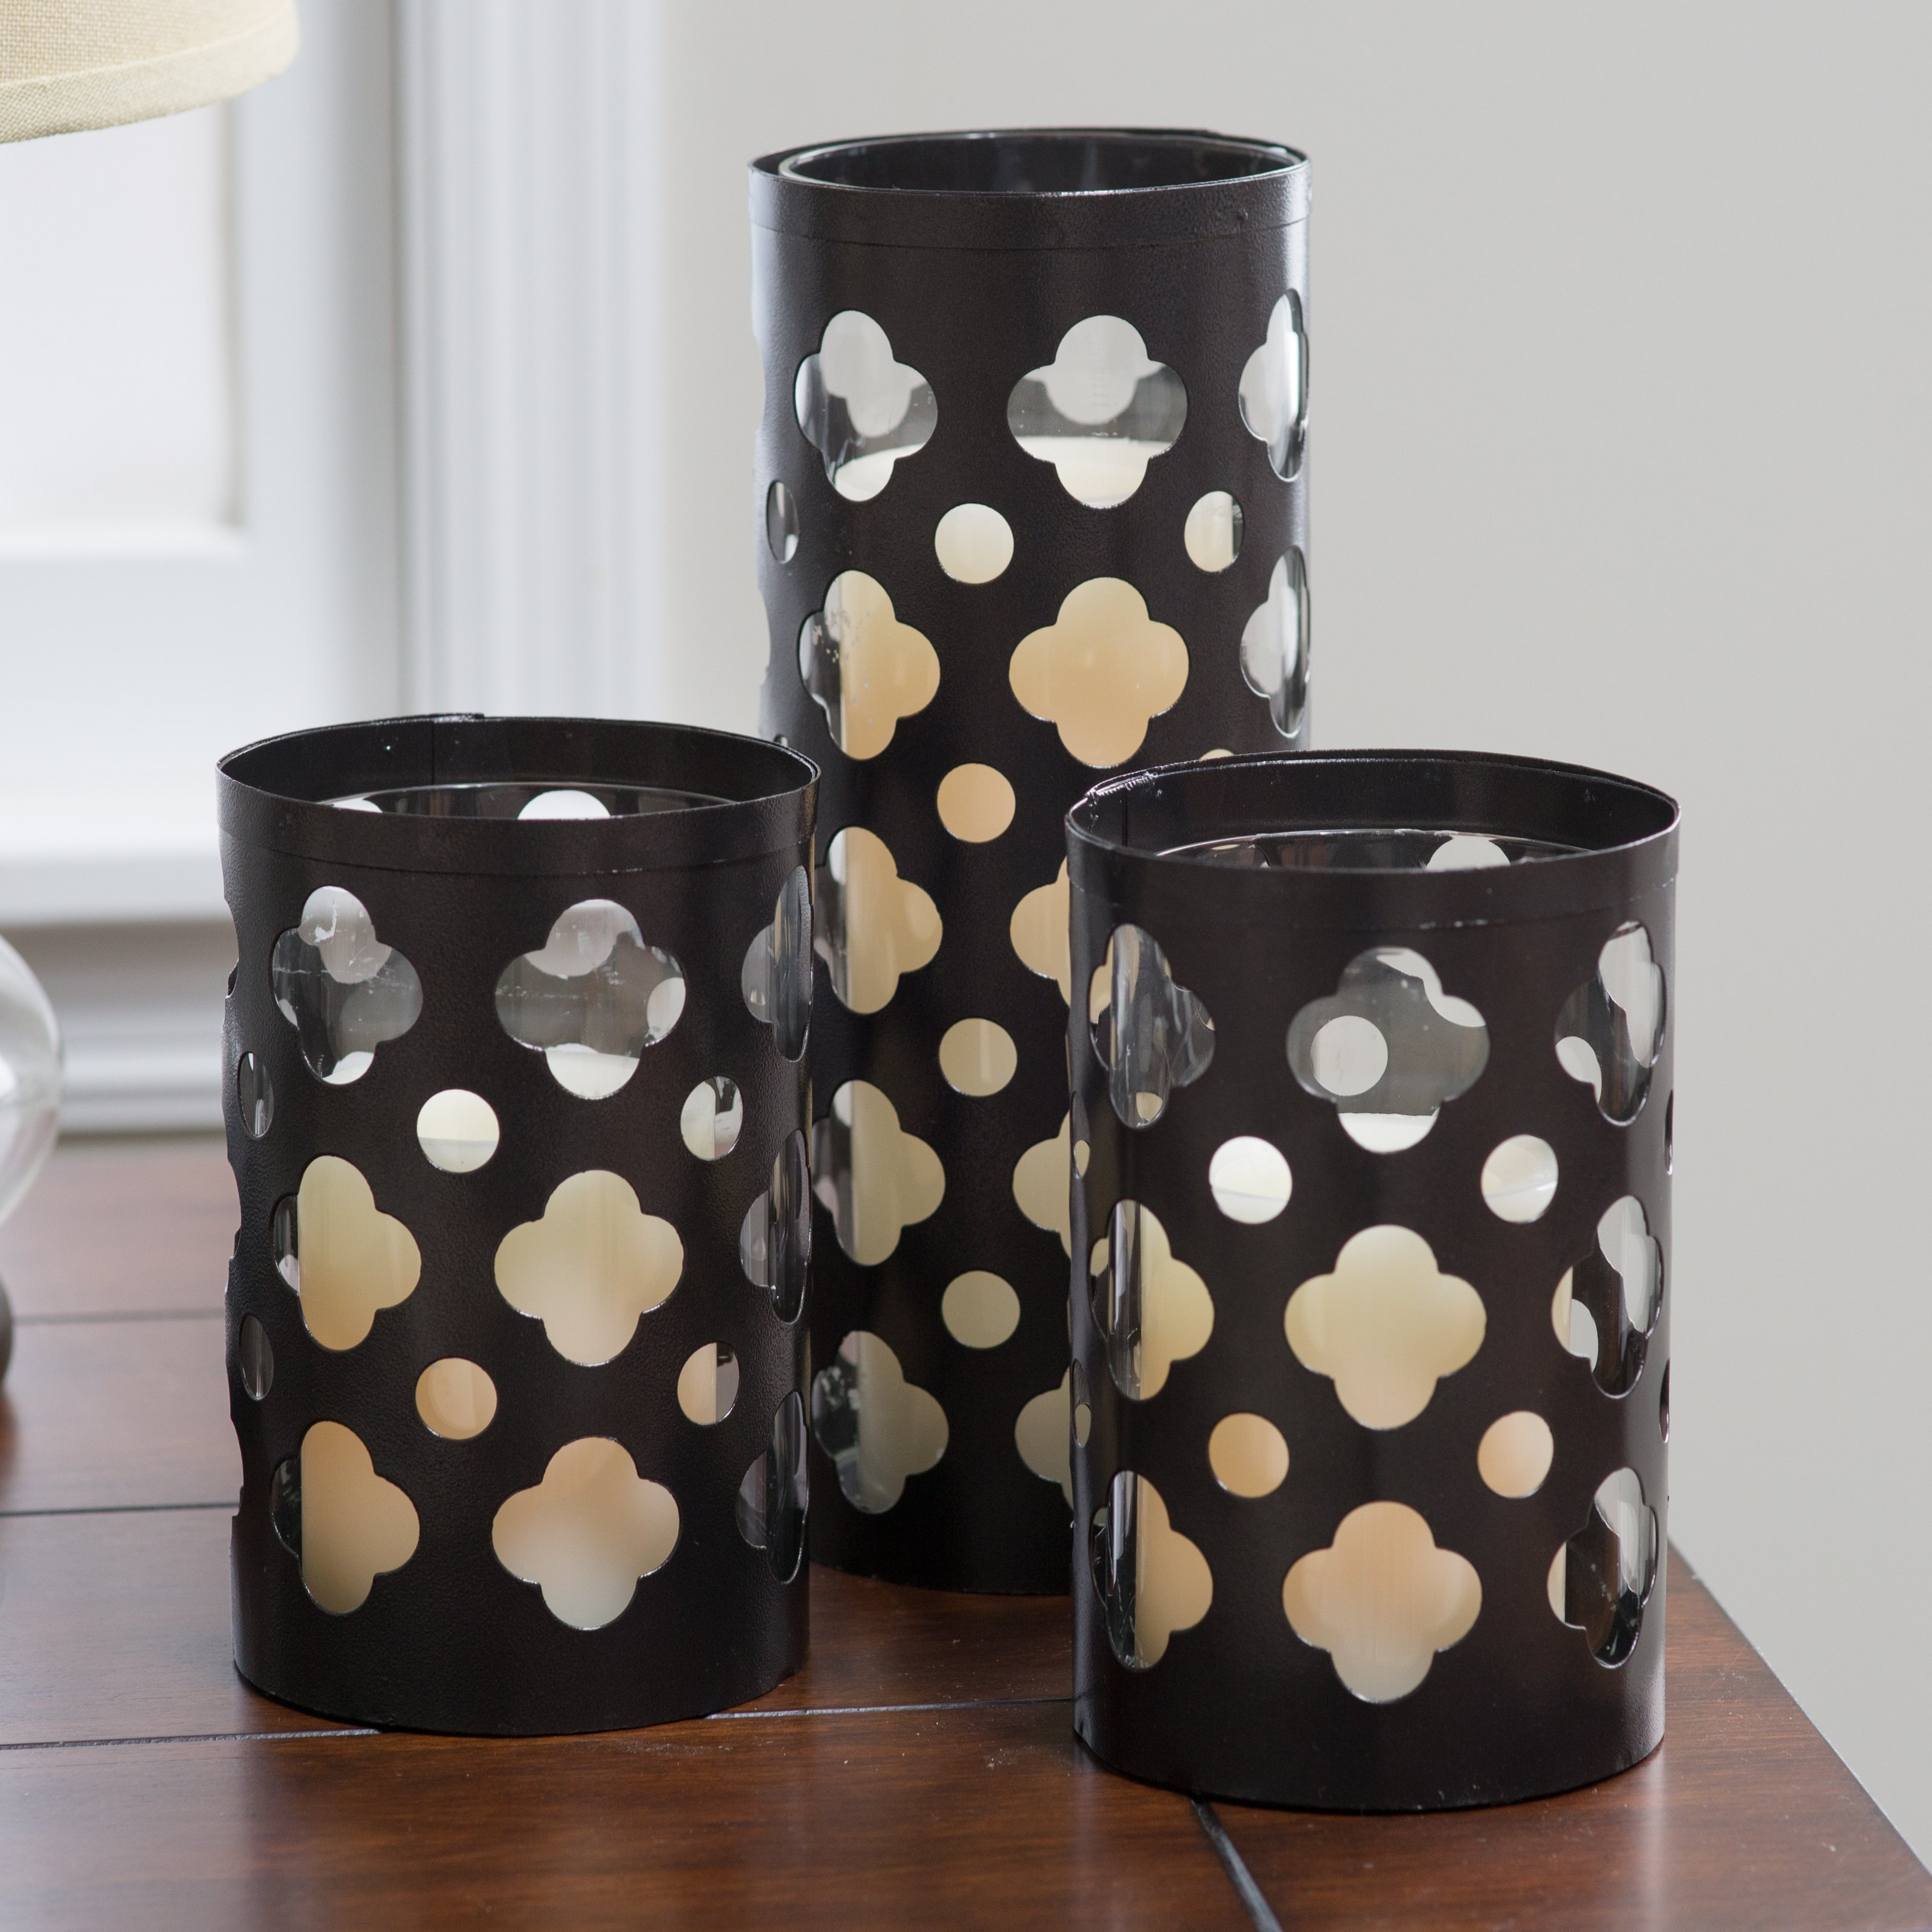 Leila Cutwork Hurricane Candle Holders - Set of 3